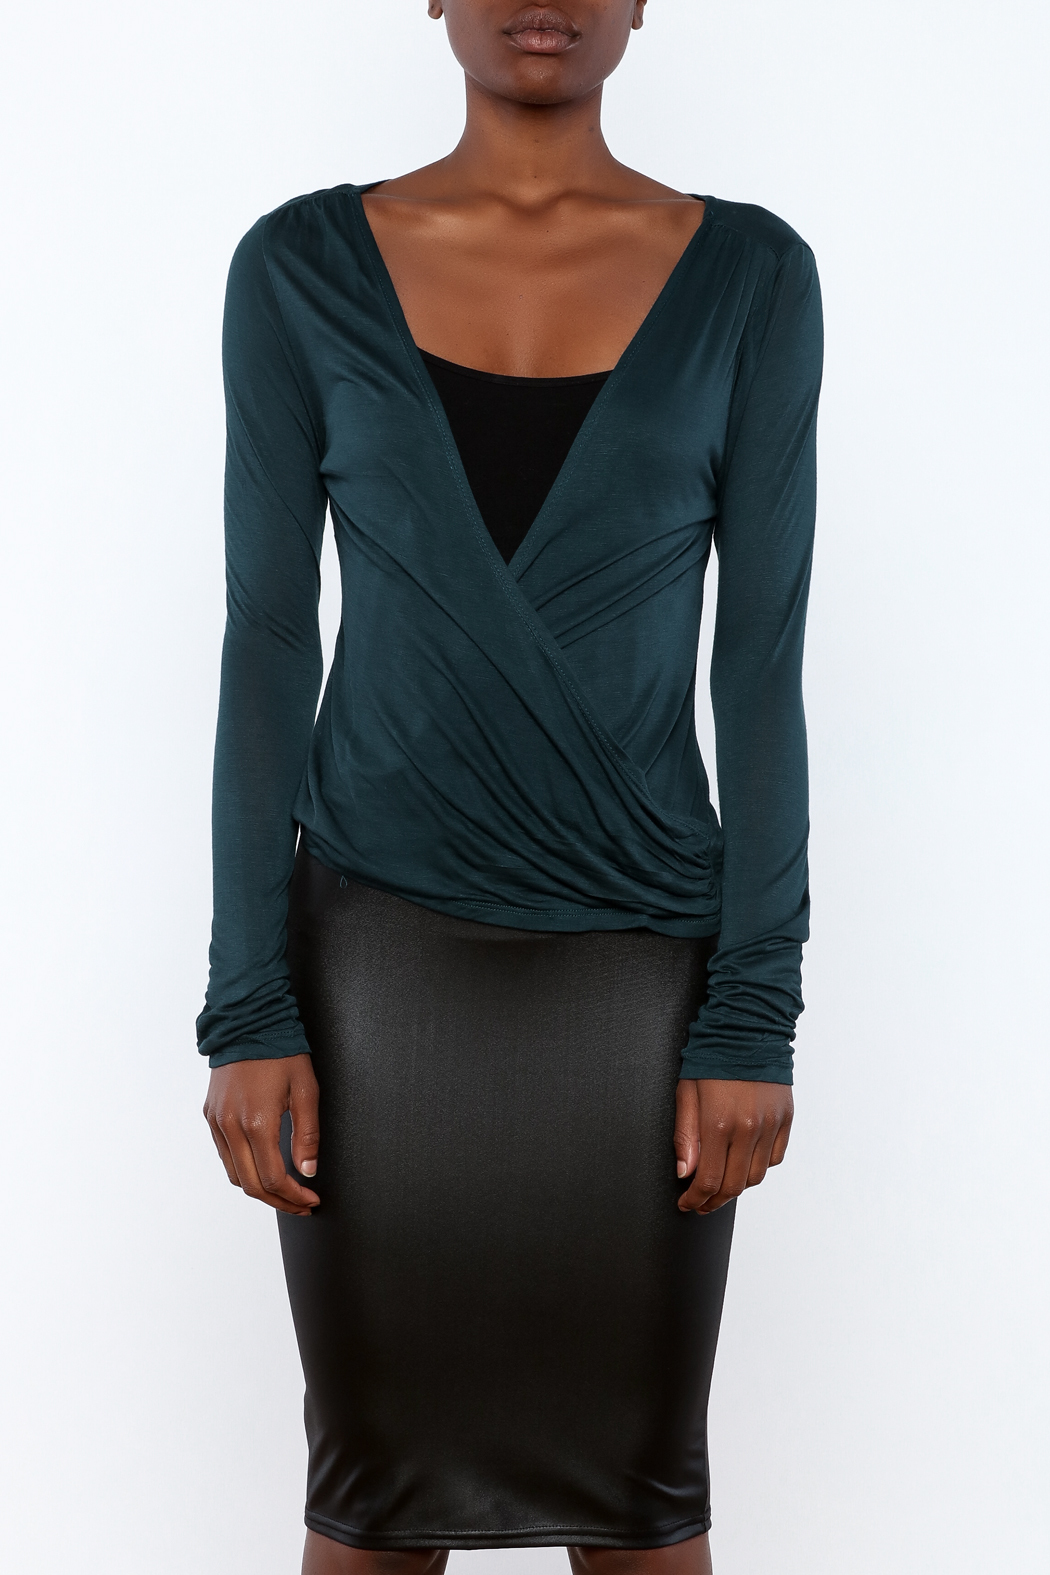 Daisy's Fashions Jersey Wrap Top - Side Cropped Image